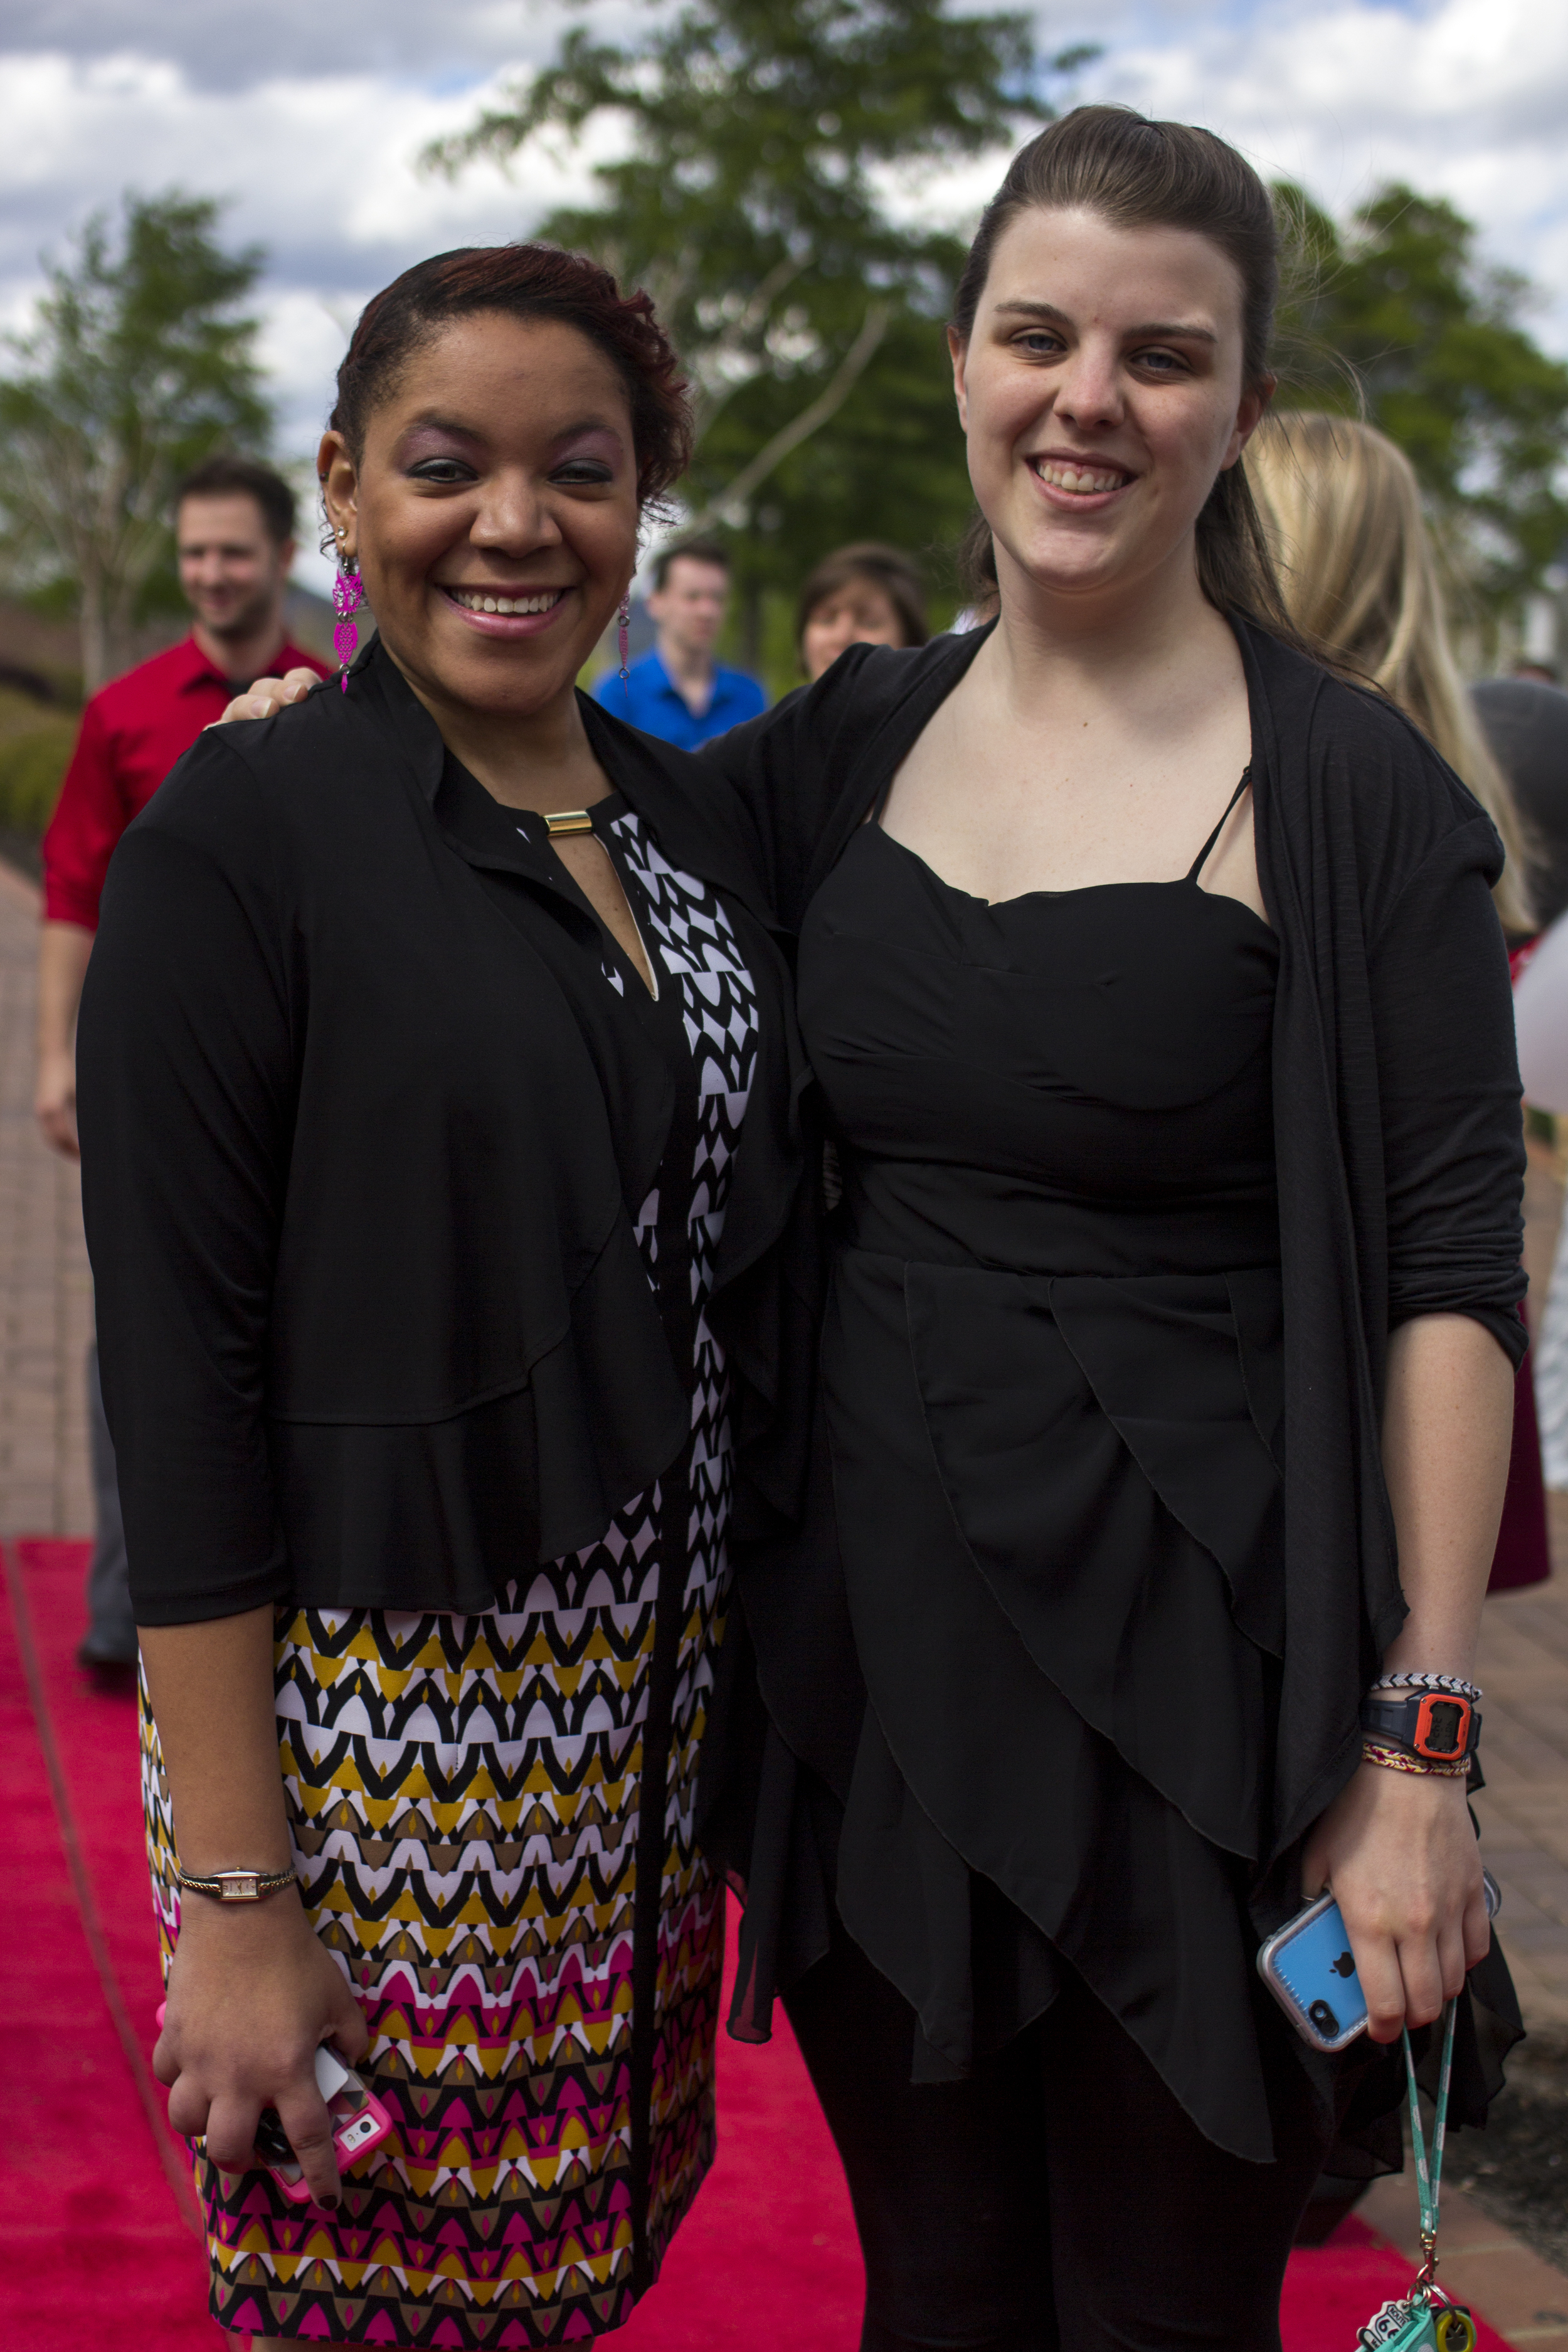 Torey Brown and Missy Roberts take a moment to smile for the cameras during their red carpet moment.